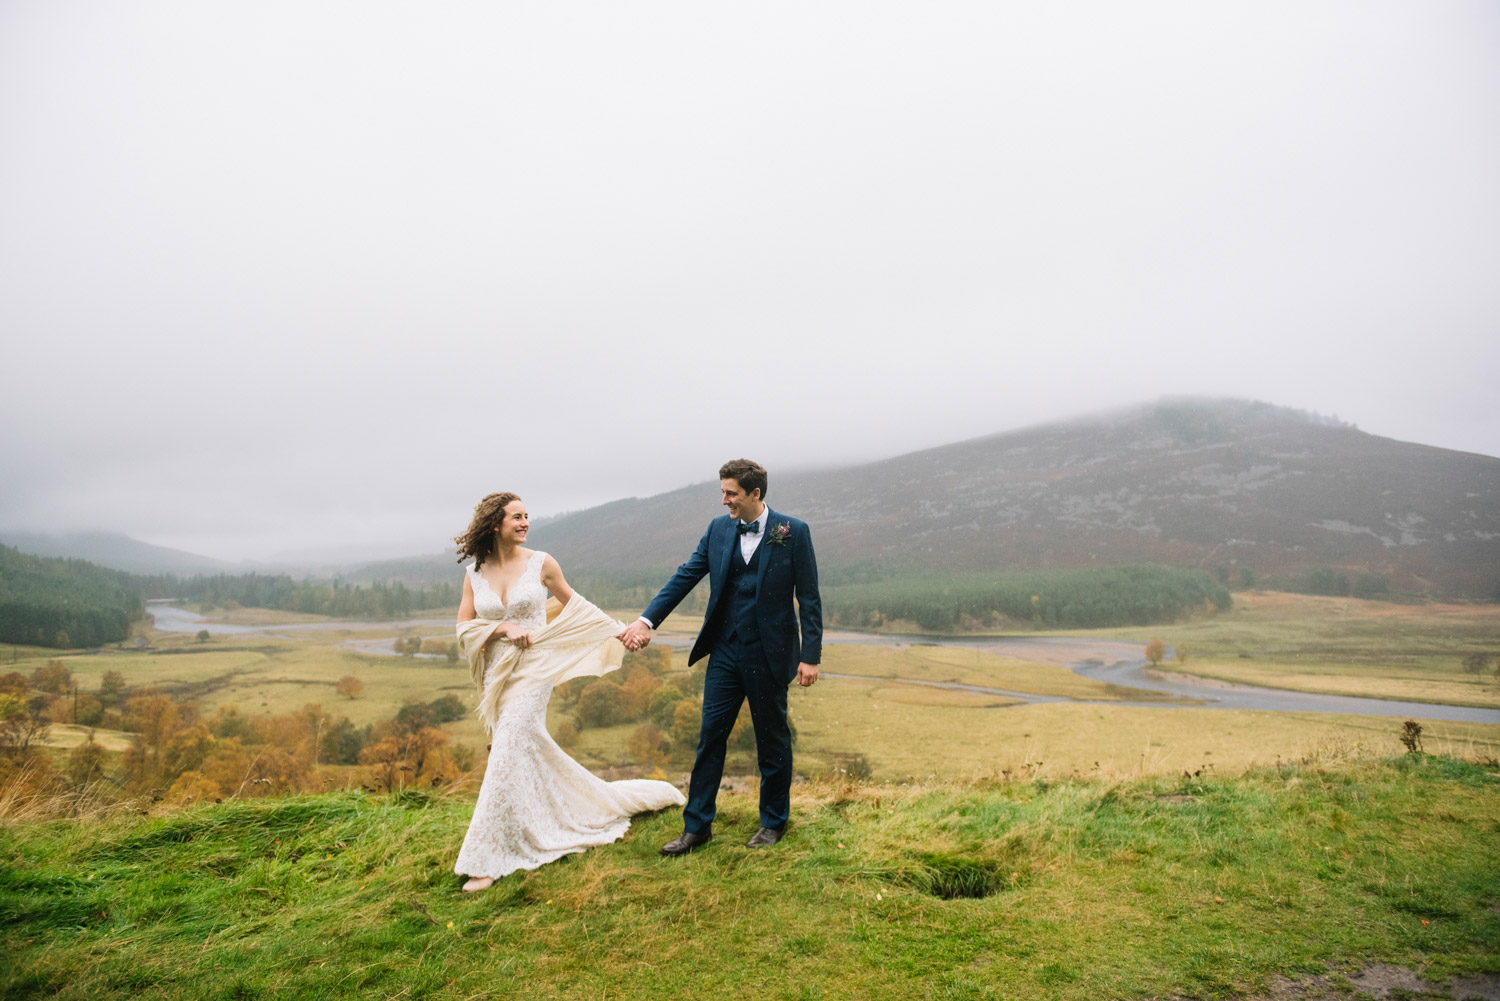 candid-wedding-photography-scotland